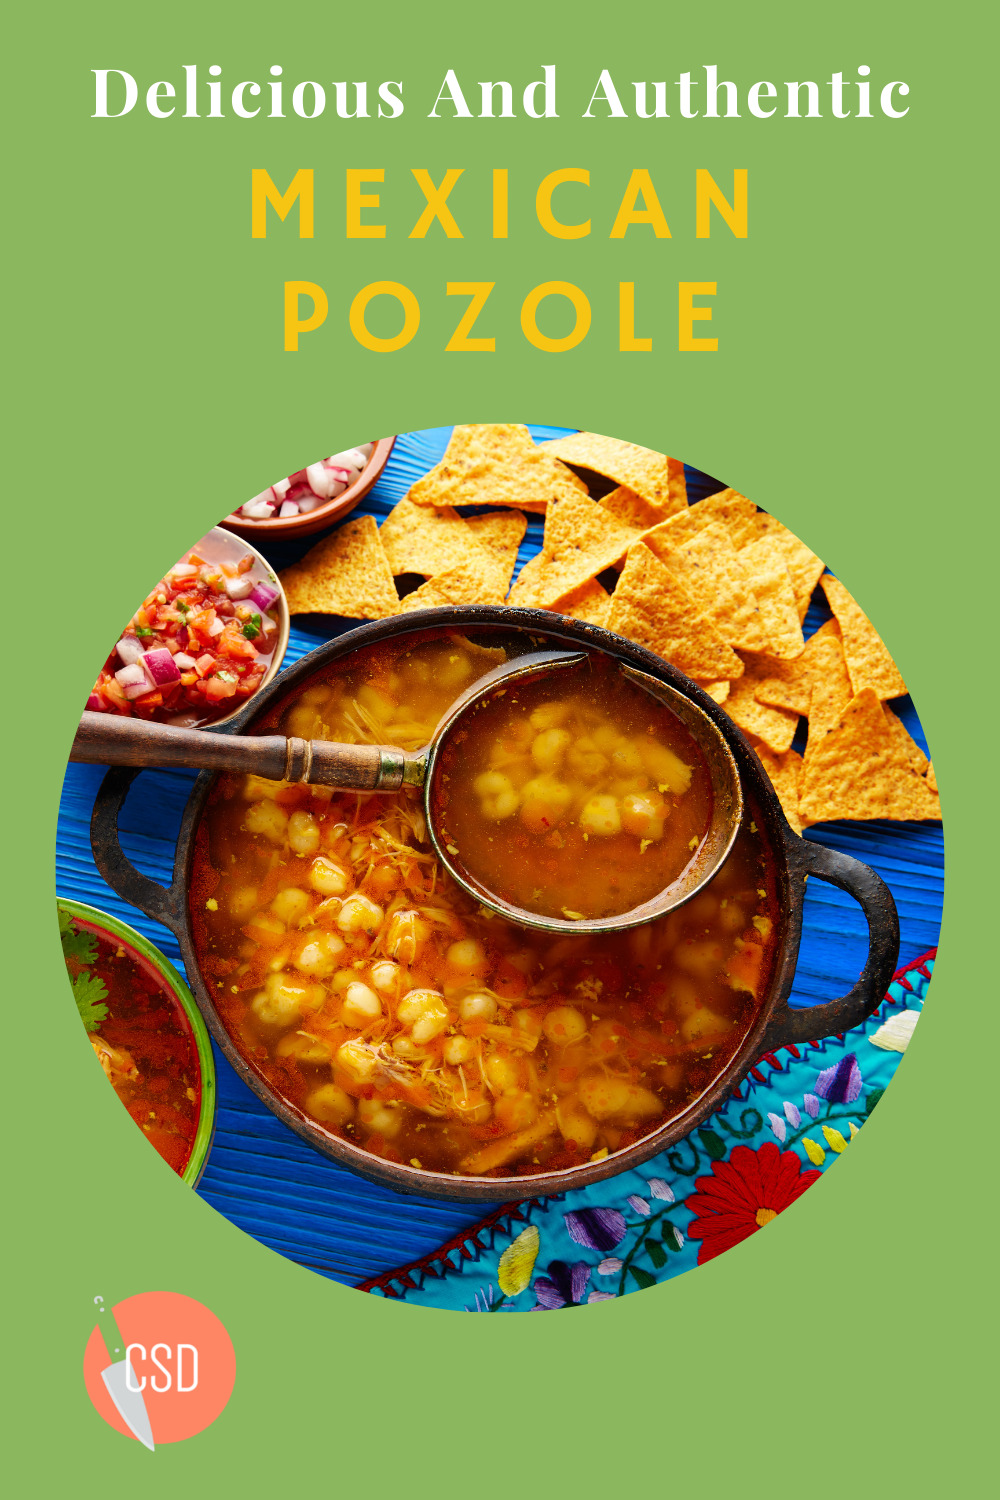 Cutsidedown.com is loaded with delicious and easy recipes you're sure to love! Find authentic Mexican food ideas your entire family will love. This Mexican pozole recipe is sure to please at your next family dinner.